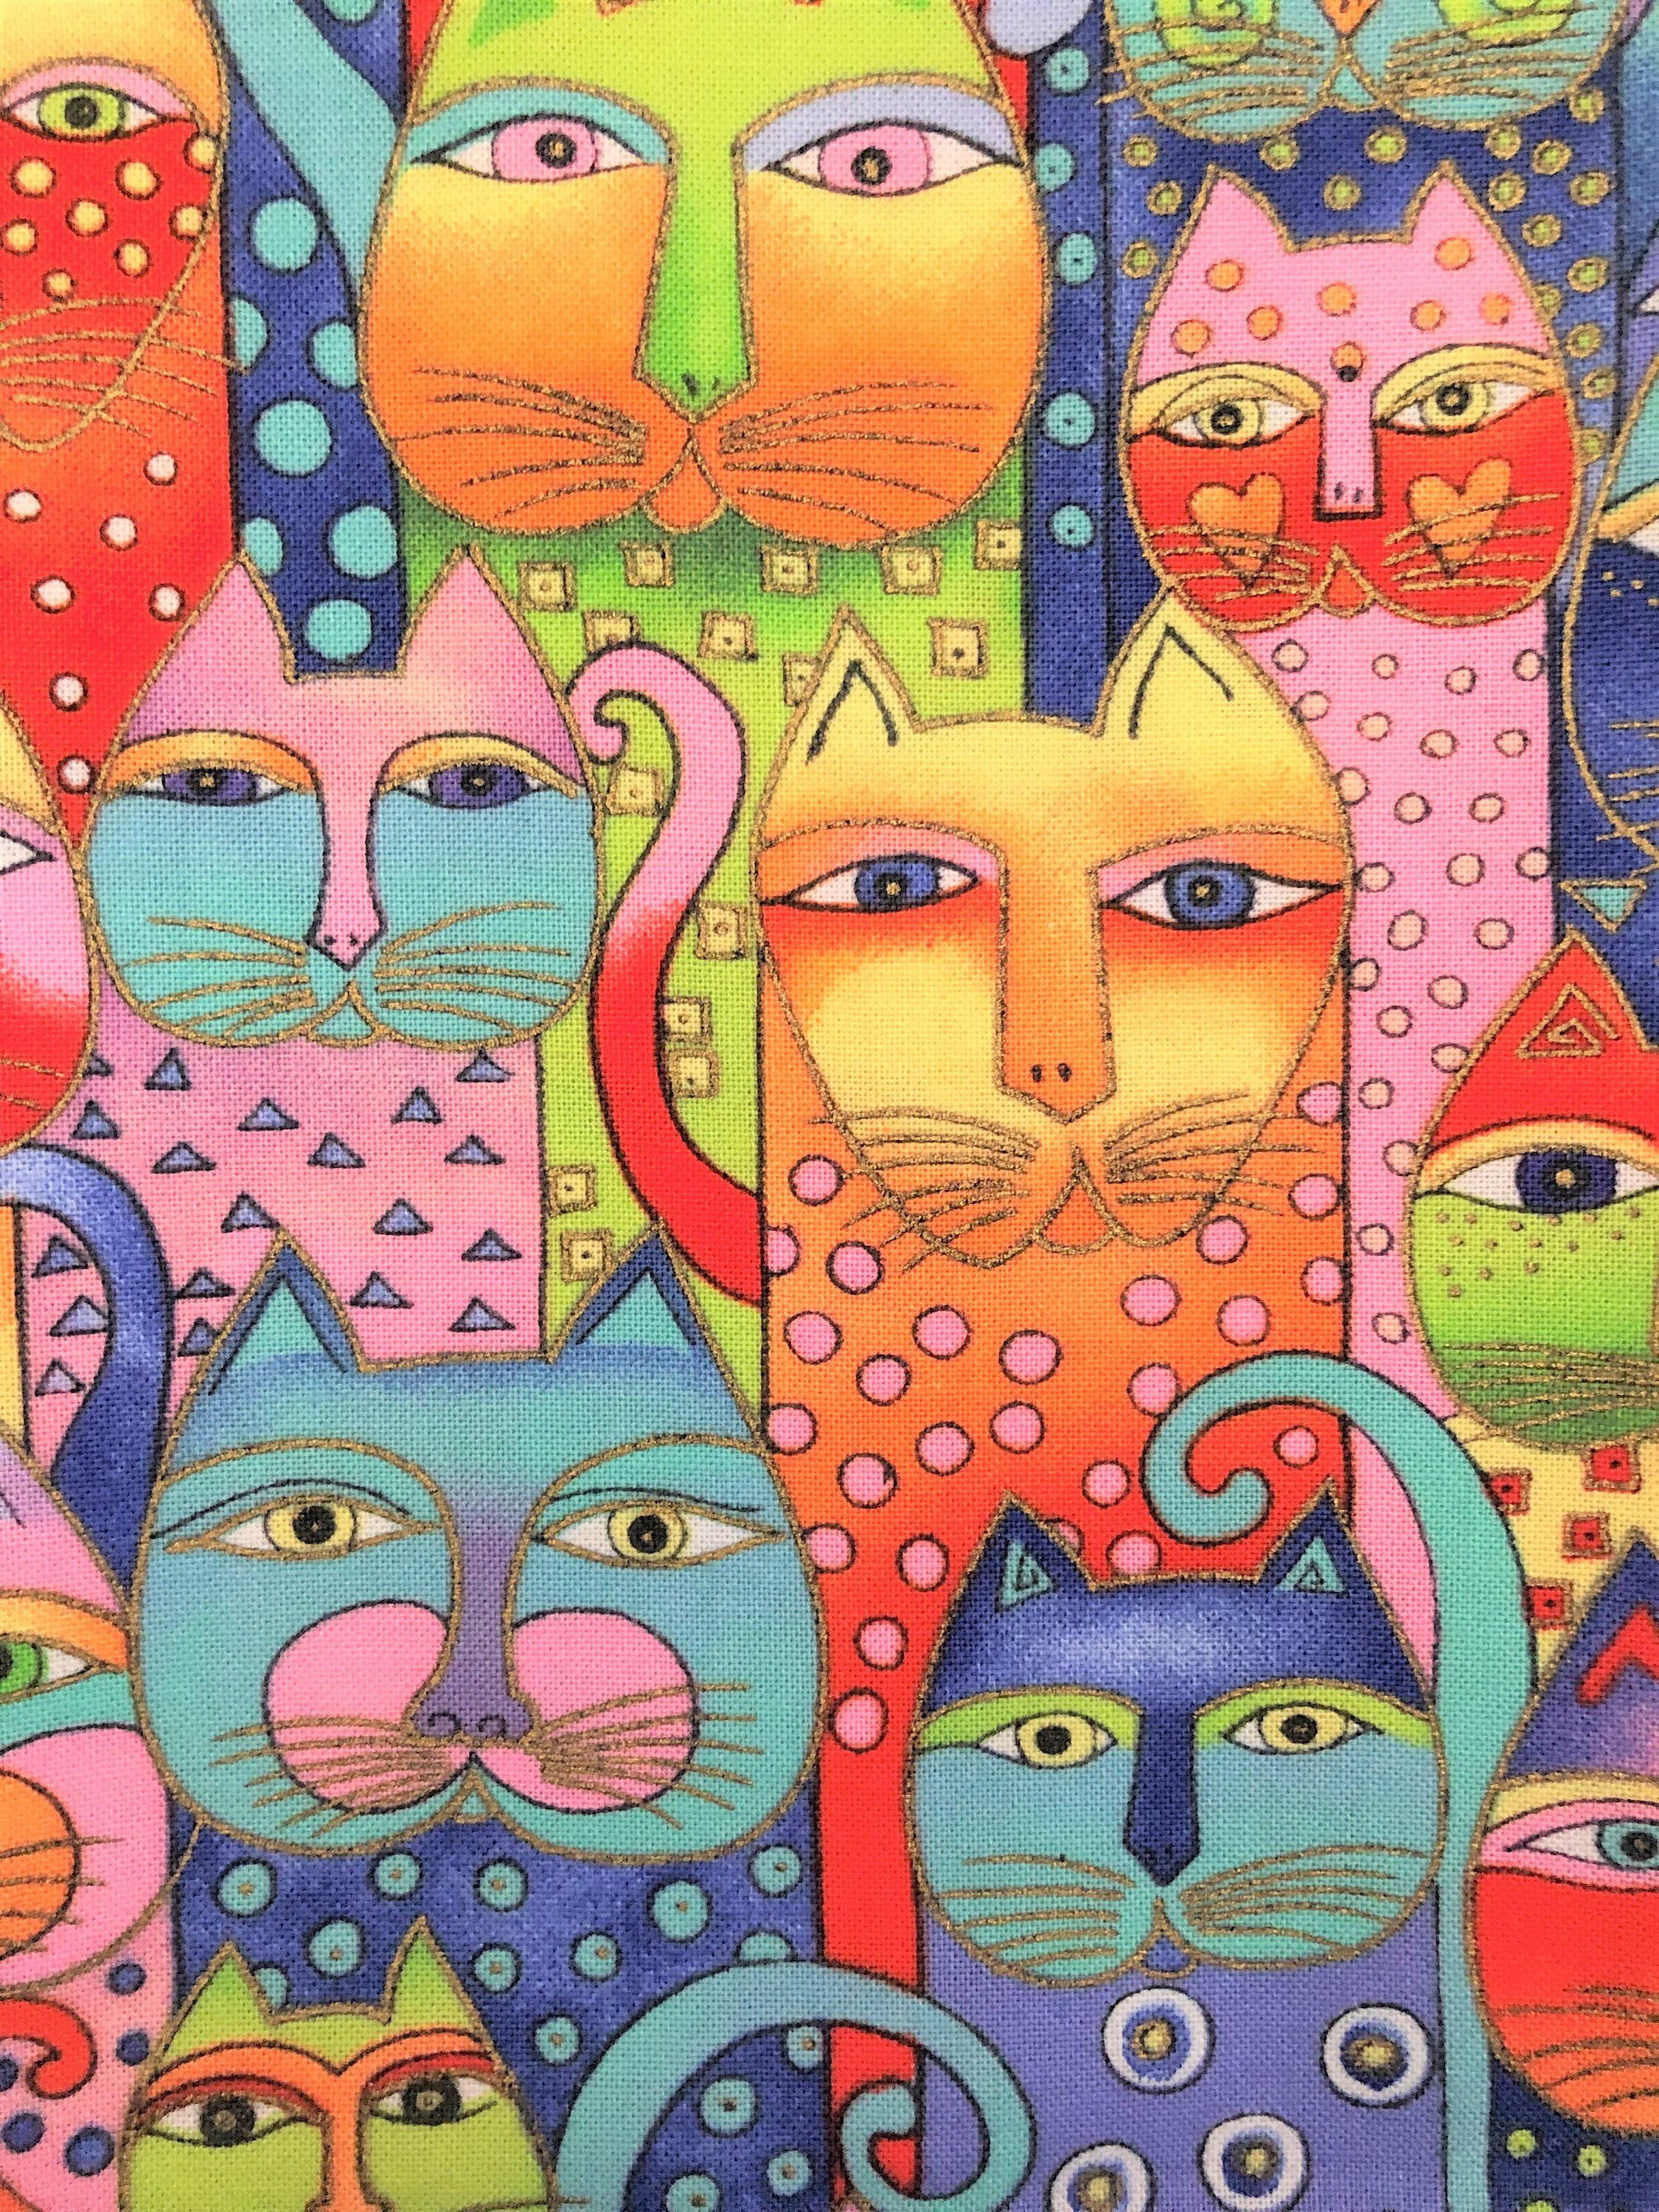 Cats by Laurel Burch Fabric Yardage/Remnant/Fat Quarter